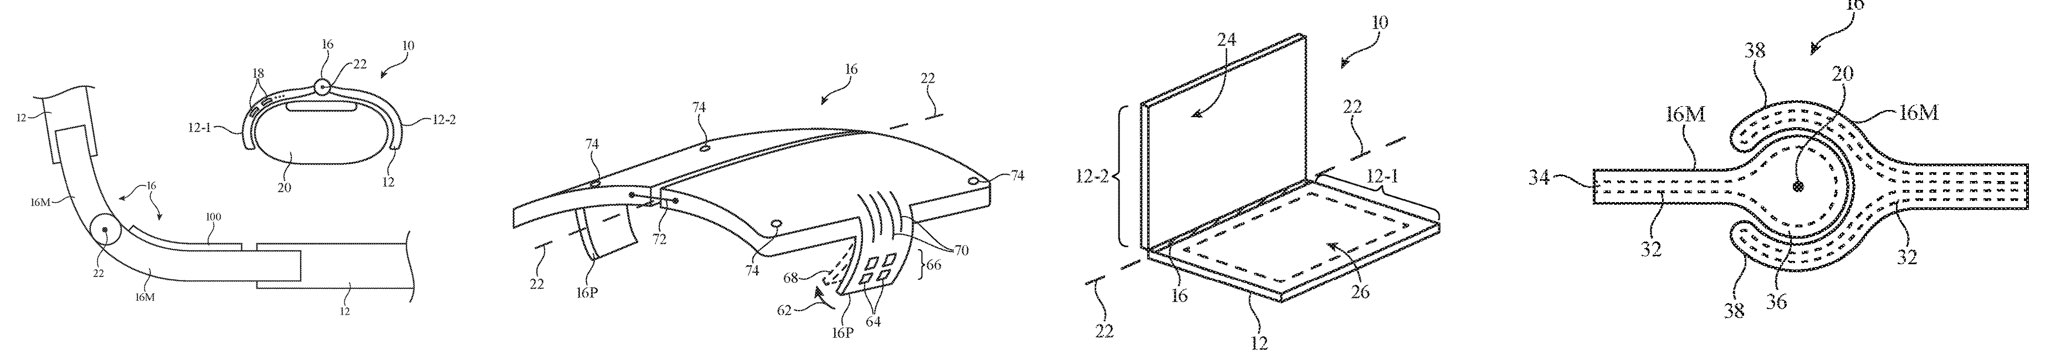 Apple's foldable iPhone patent drawing showing various solutions for making stronger hinges